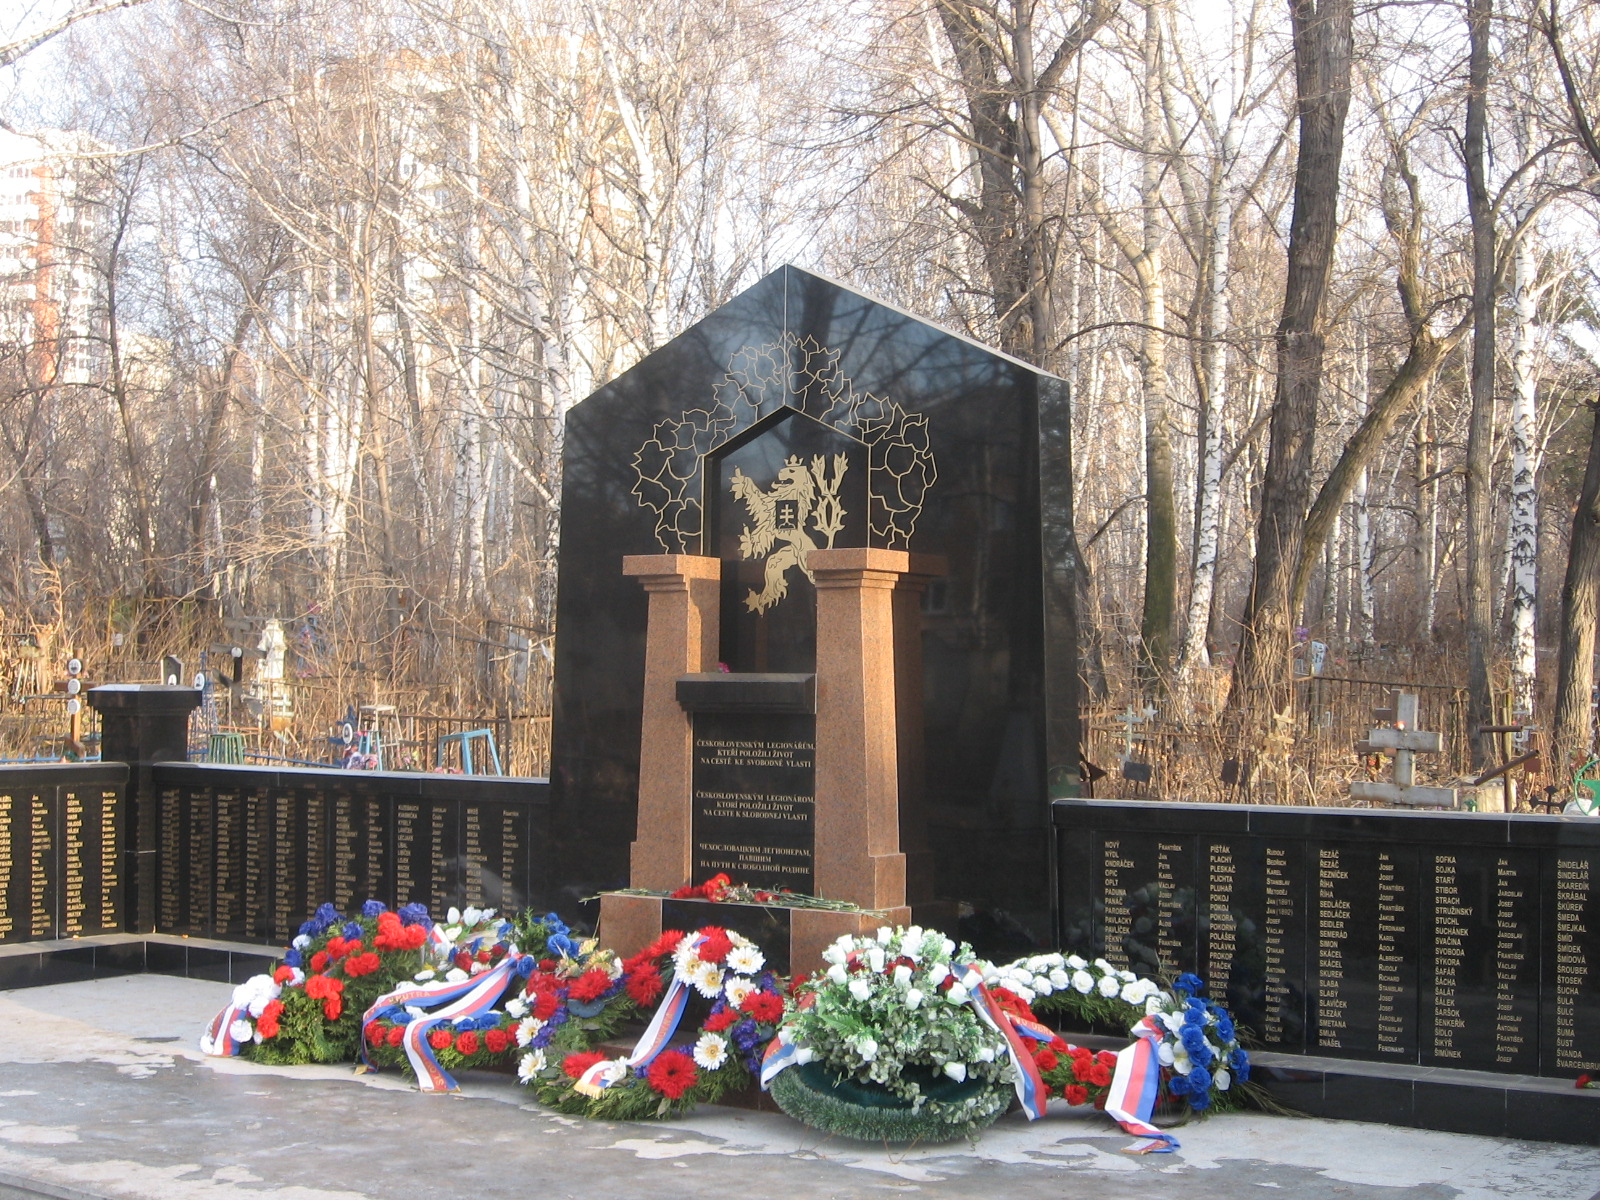 https://dic.academic.ru/pictures/wiki/files/67/Czech_troop_monument1.jpg